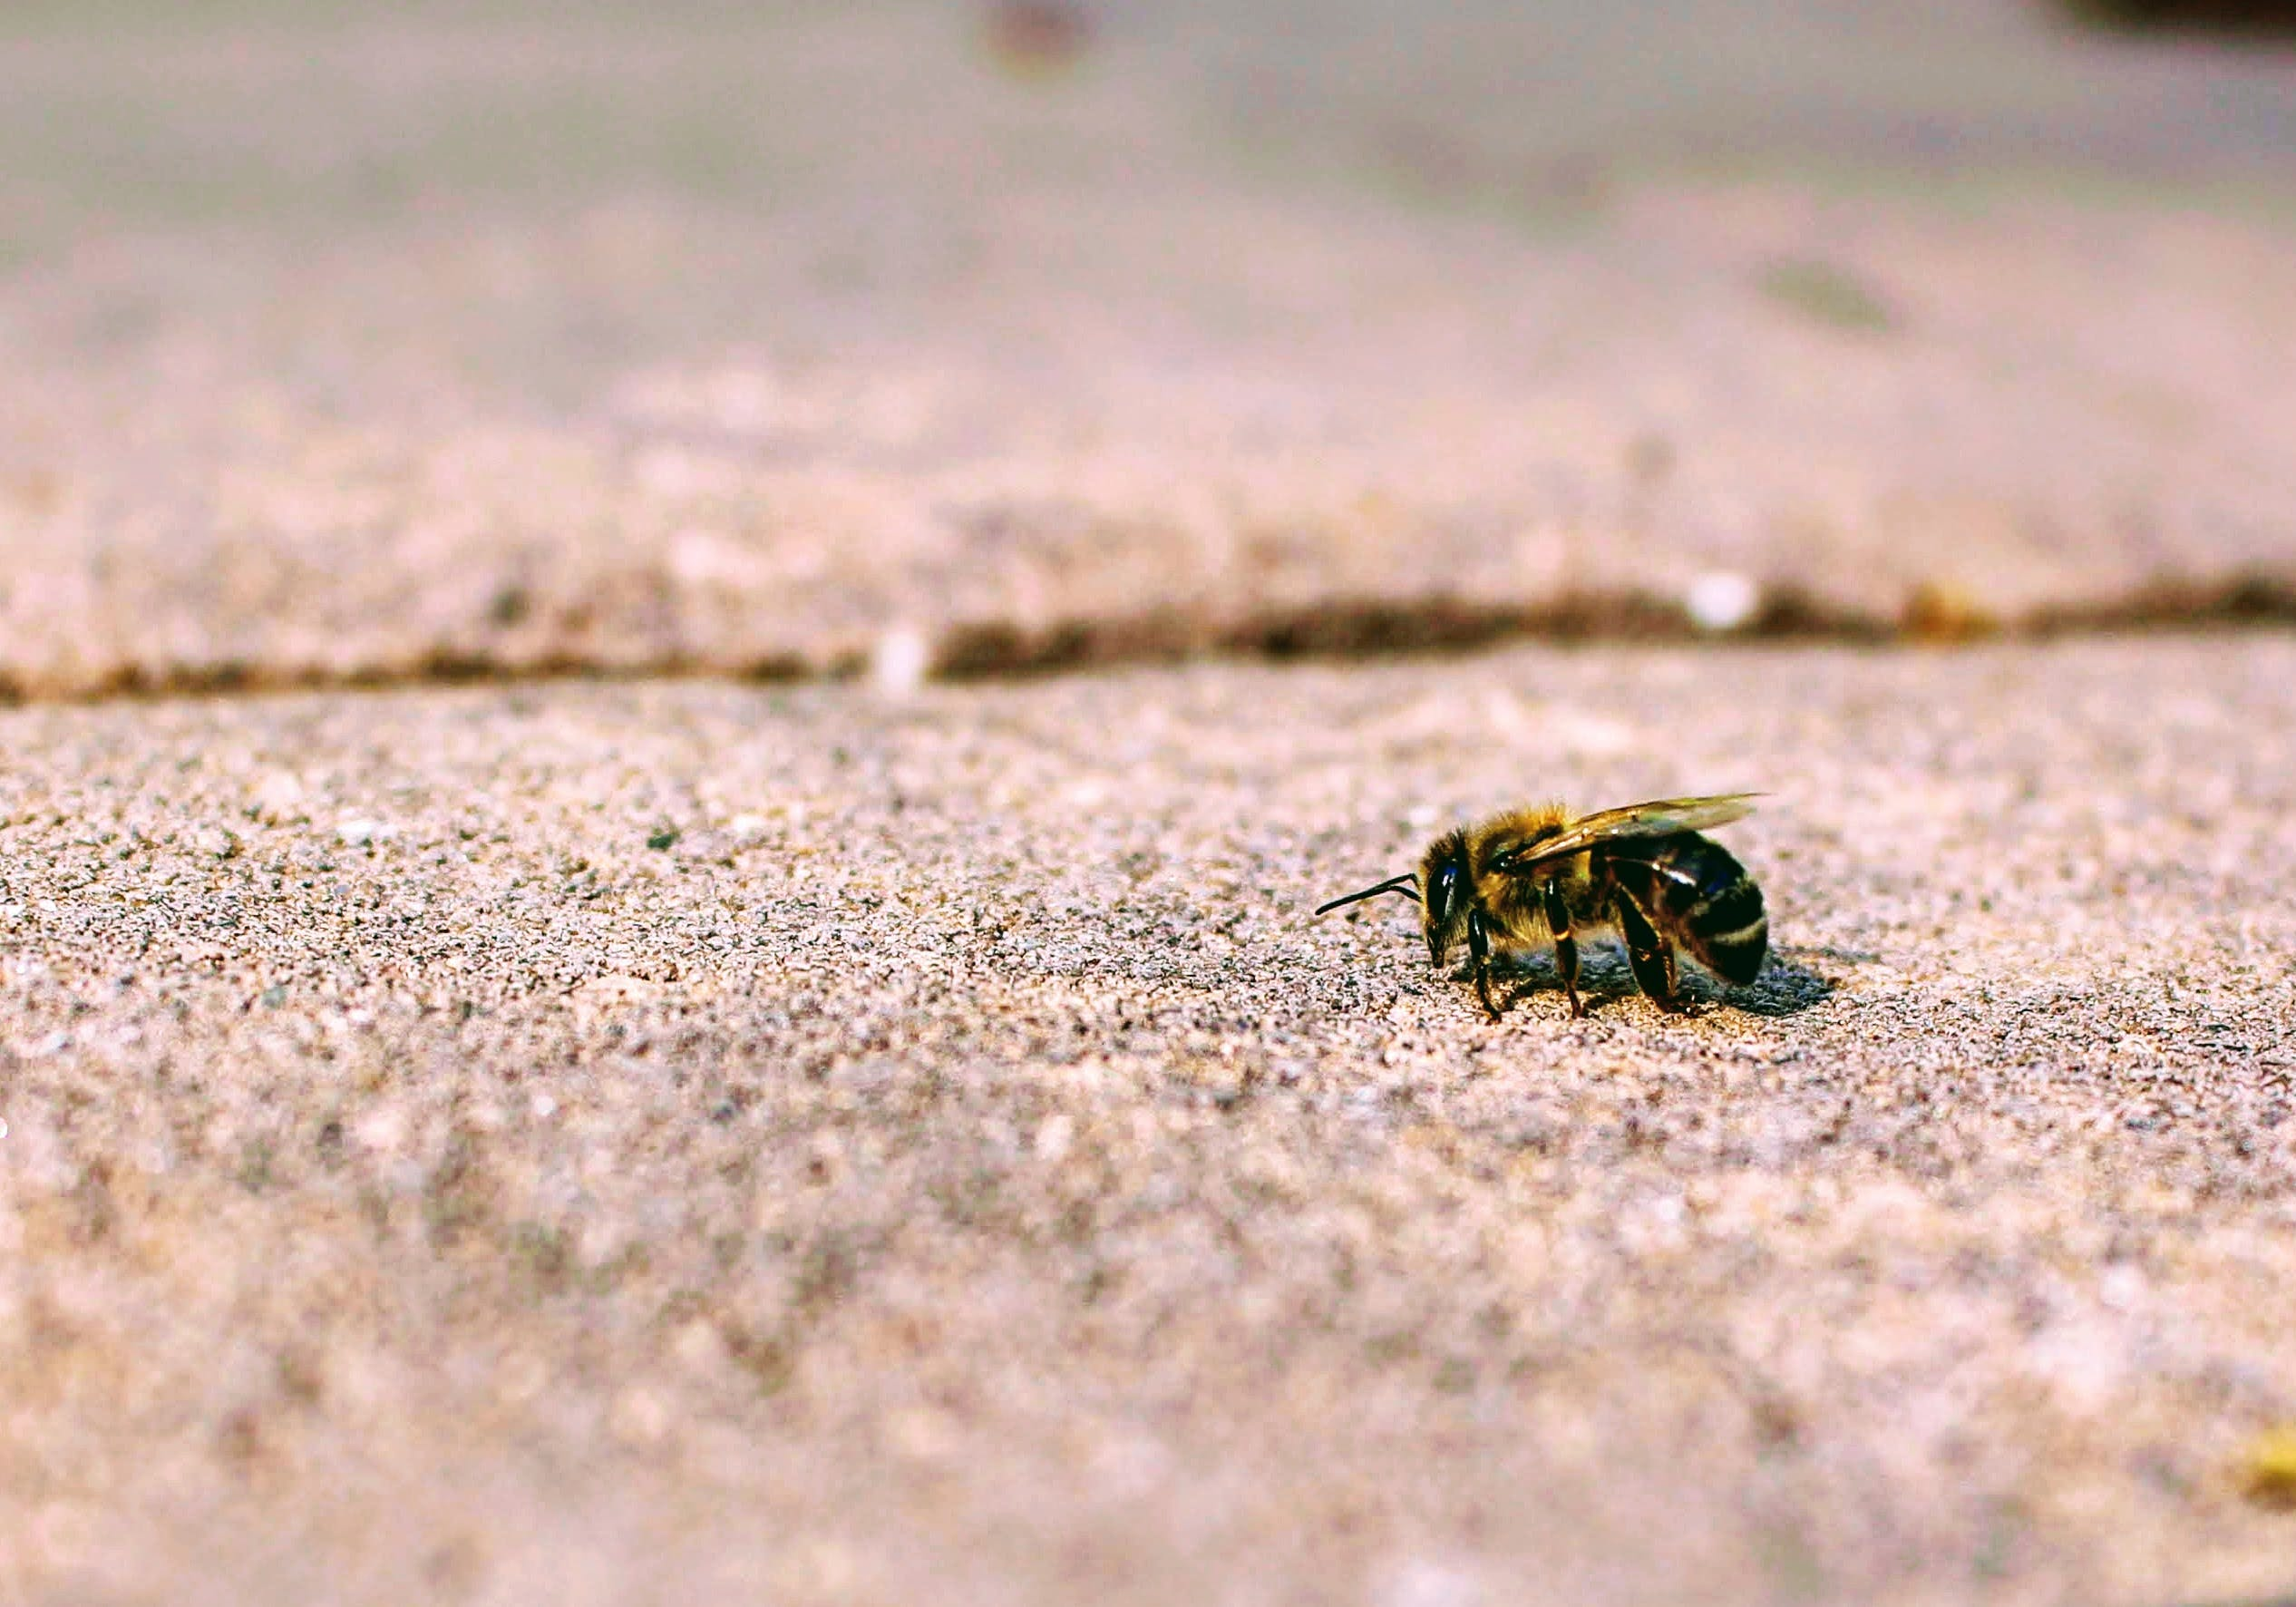 Honeybee Perching on Concrete Pavement in Close-up Photography